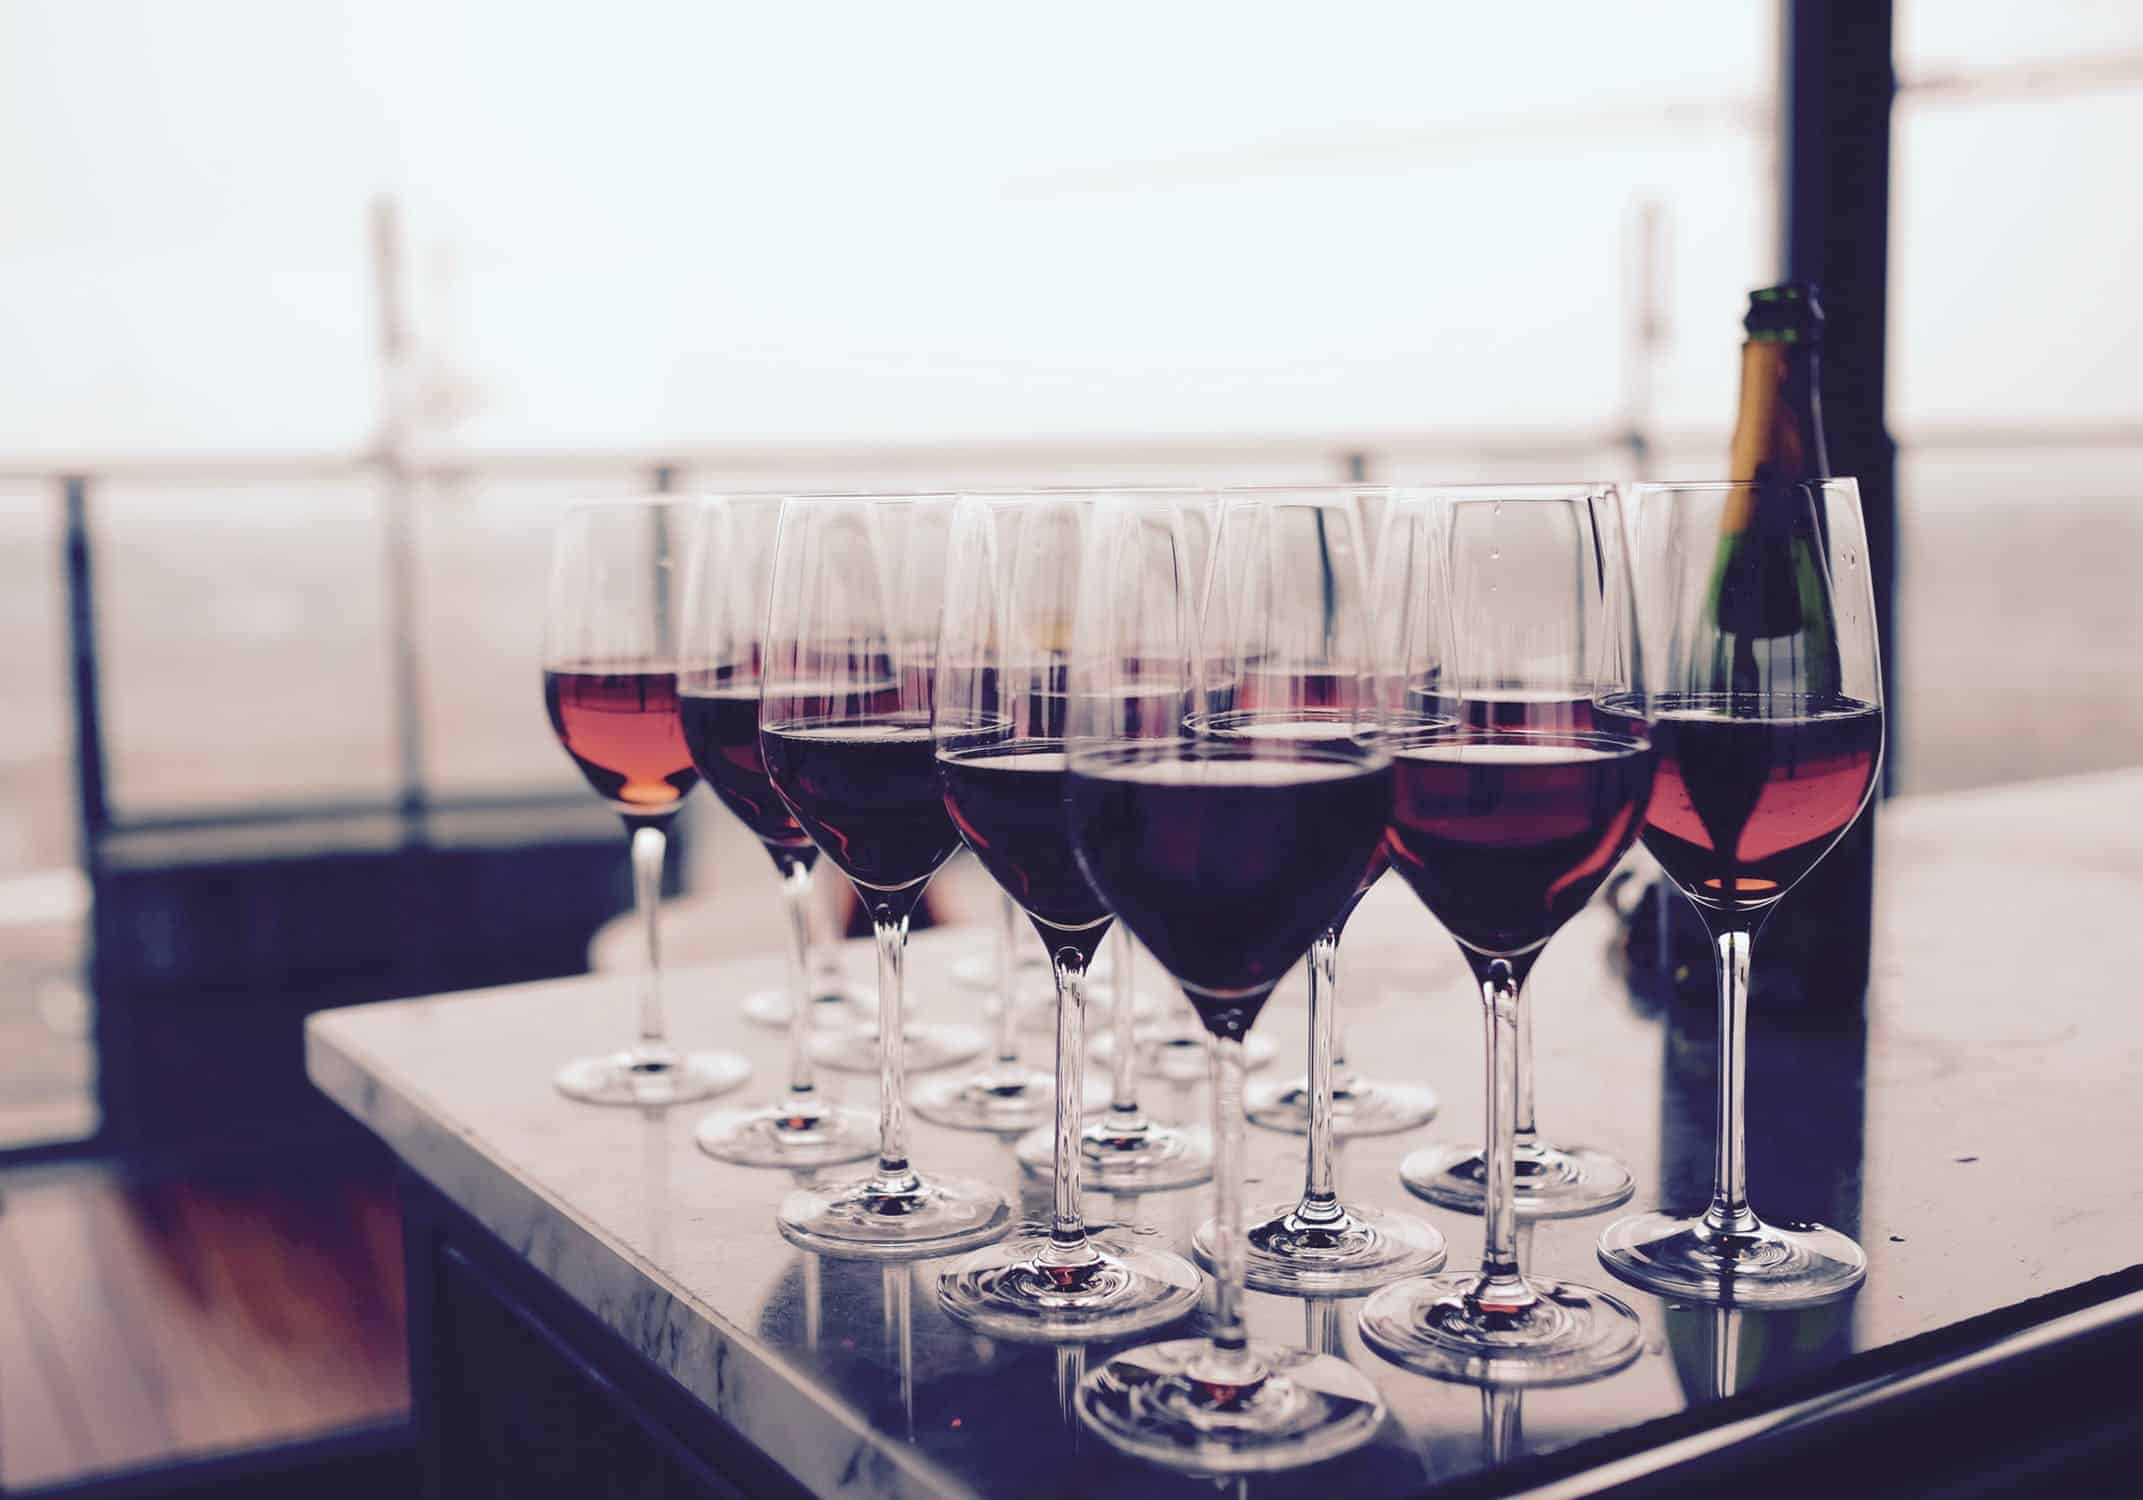 Glasses of red wine on a table